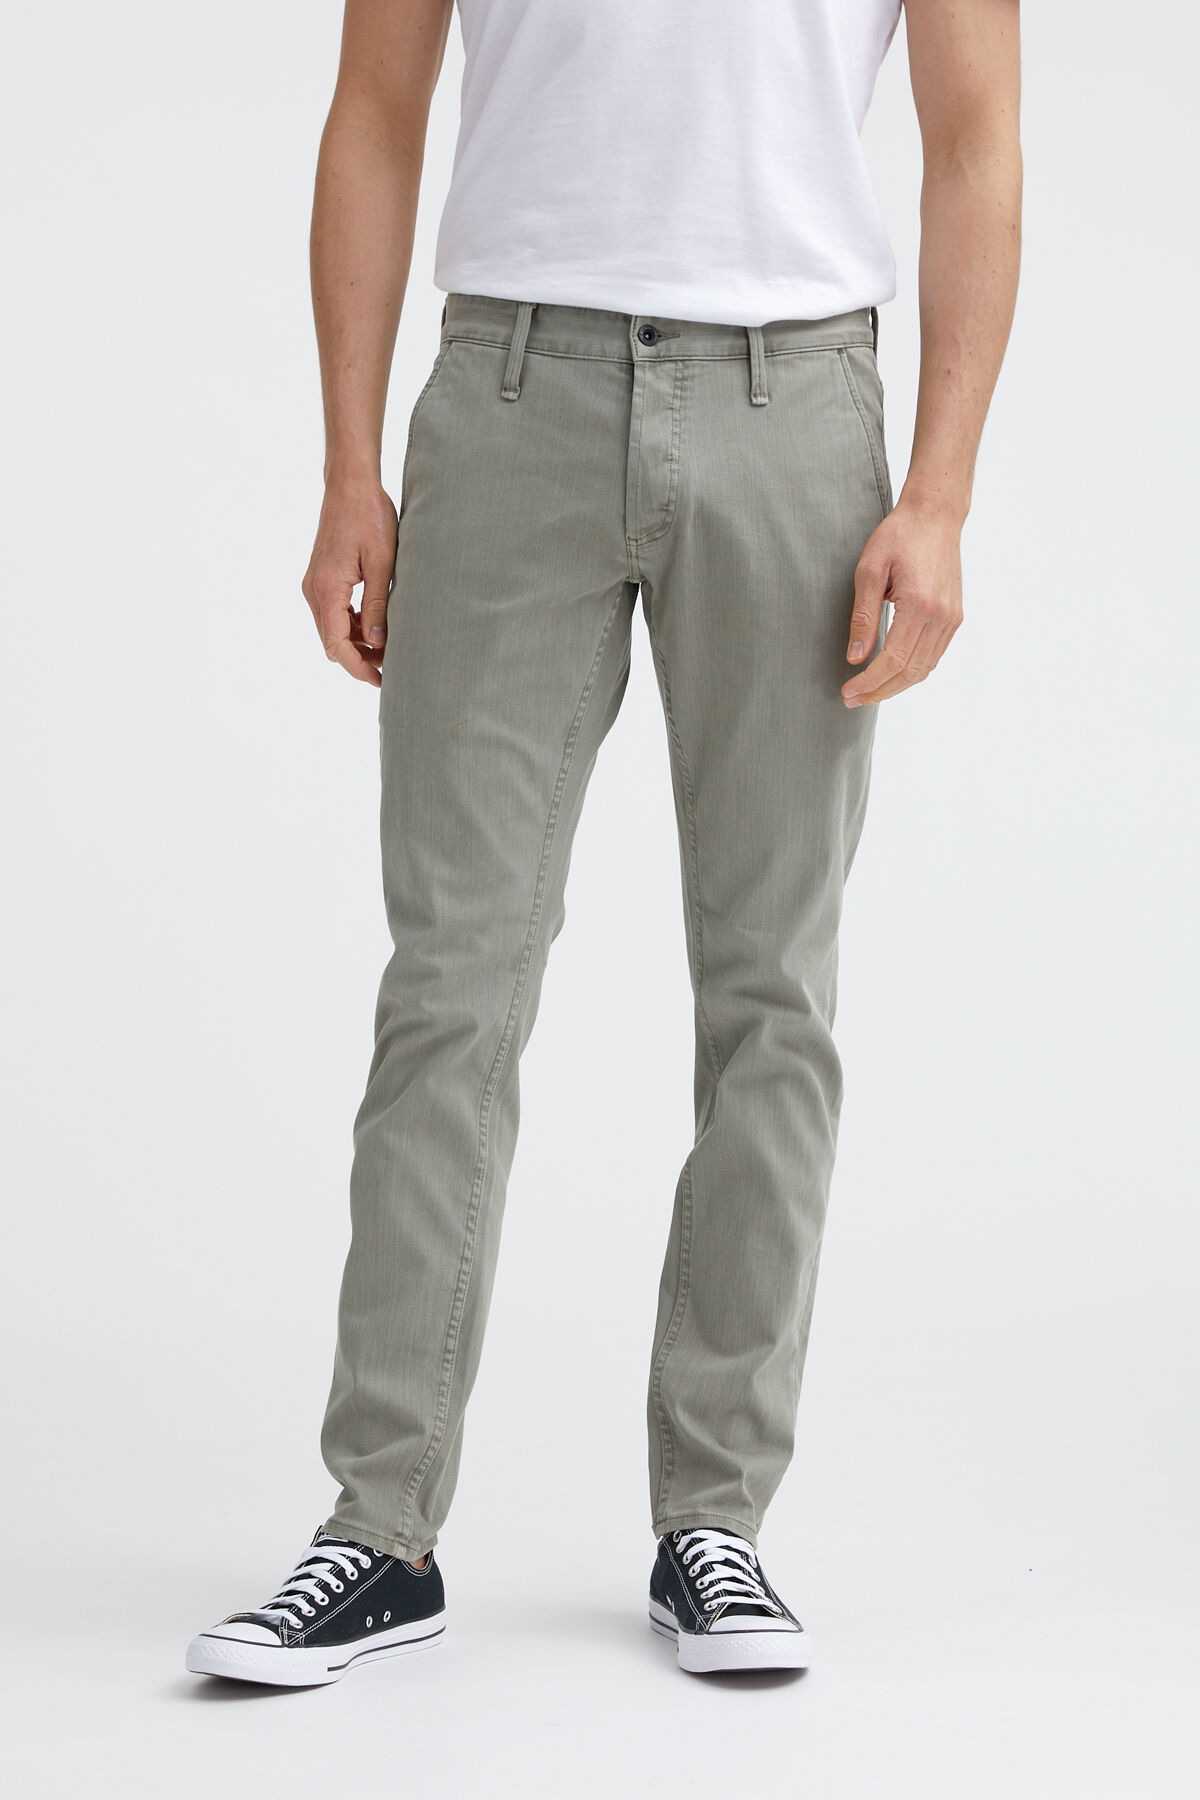 YORK Cotton & Tencel Blend Chino - Slim, Tapered Fit